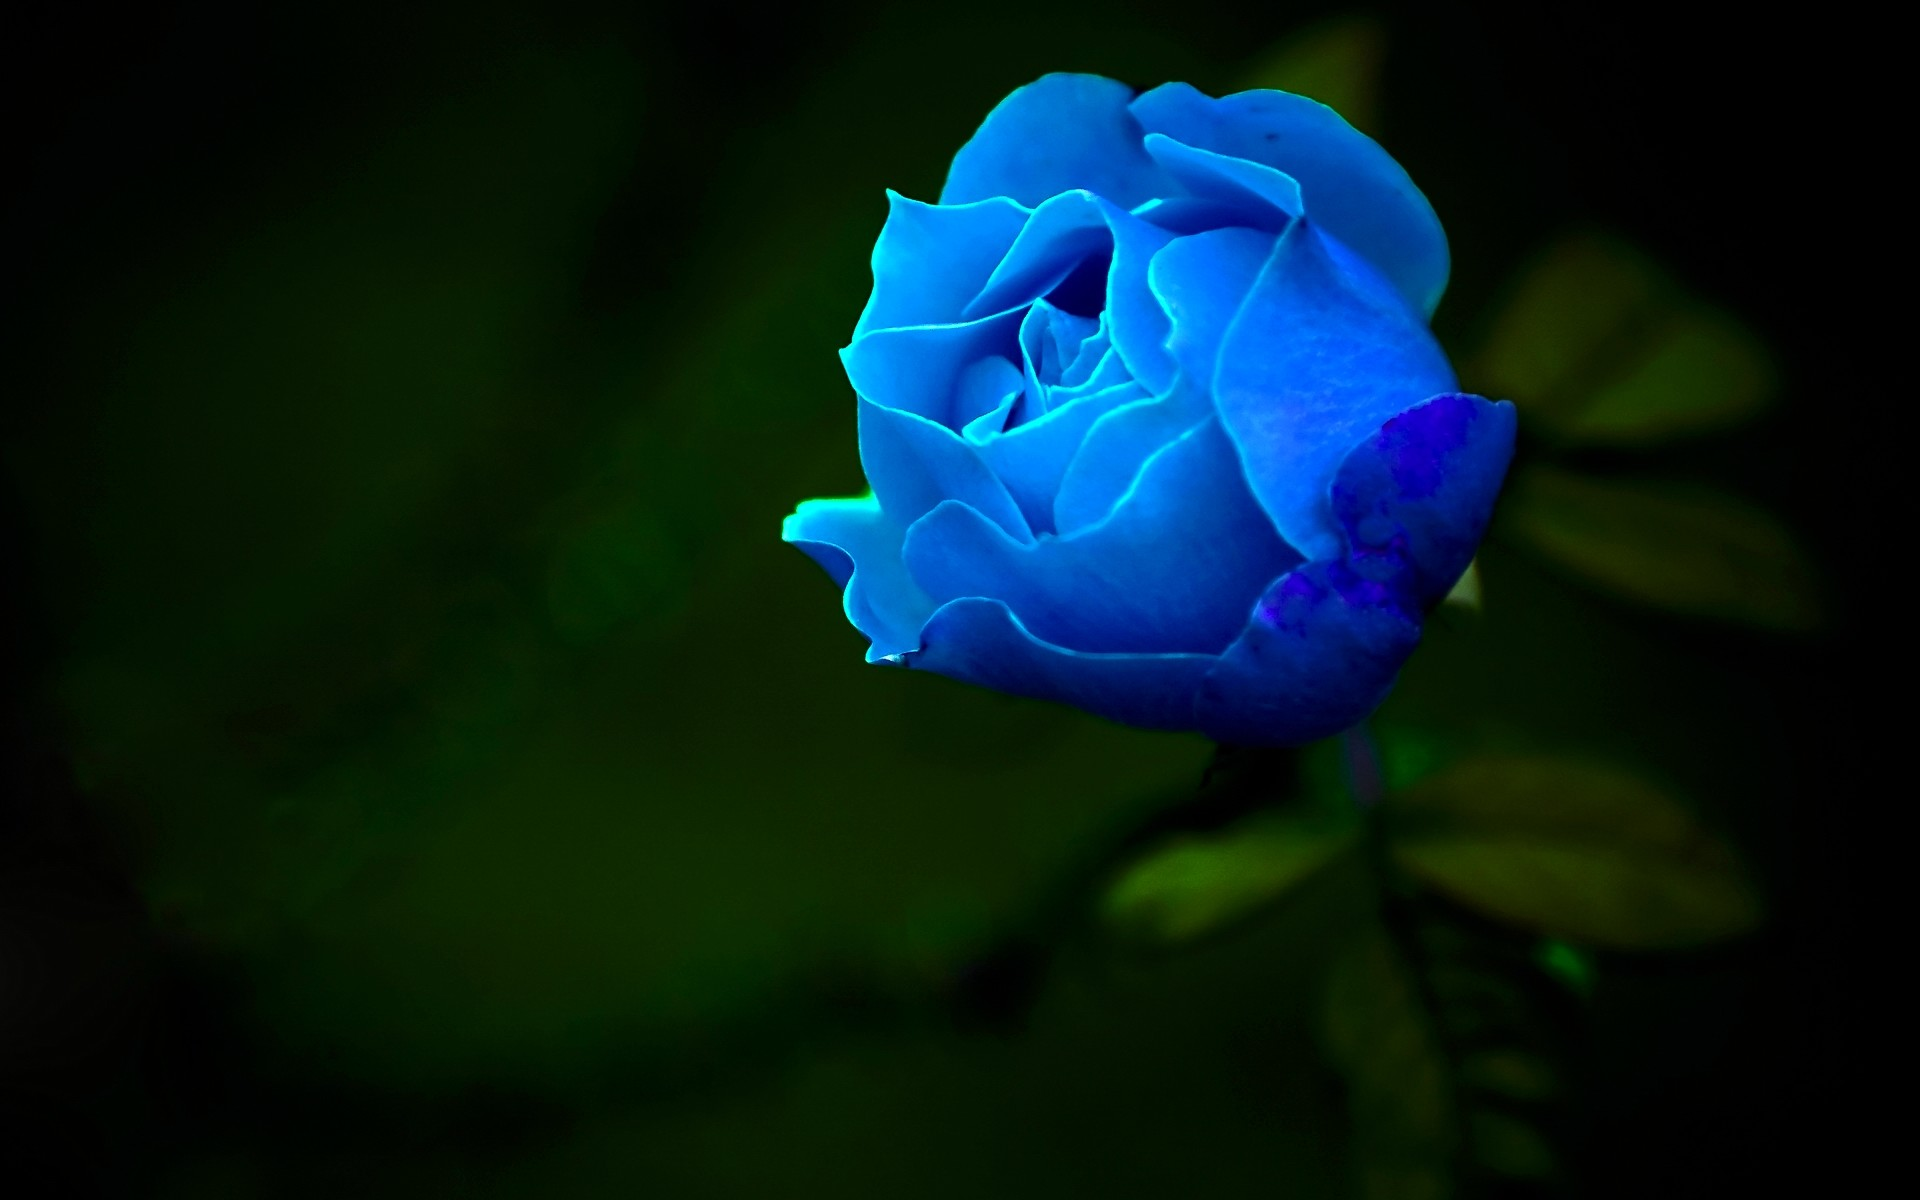 Blue Roses Wallpaper (58+ images)